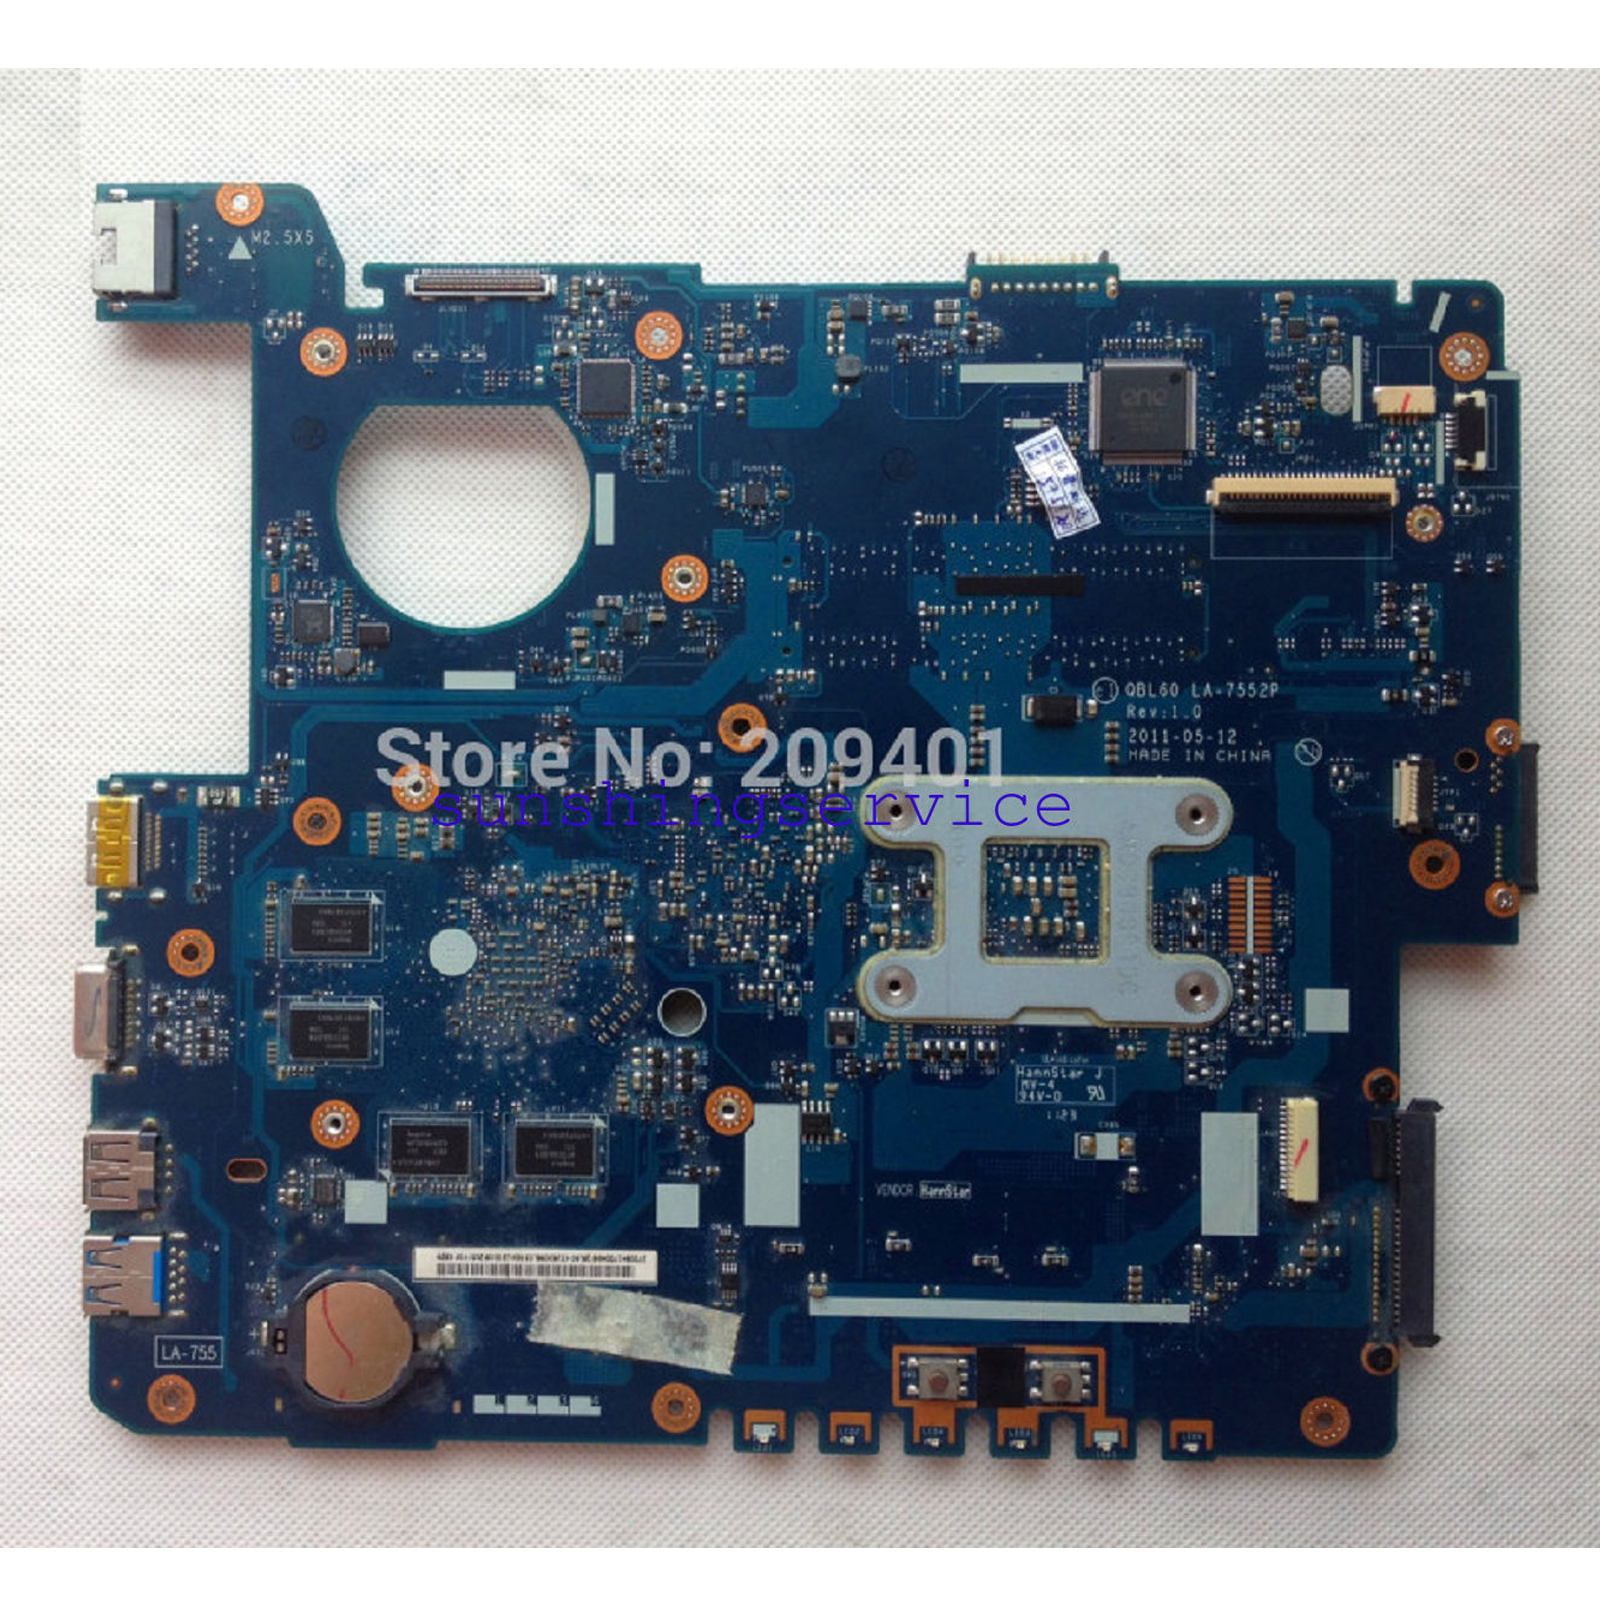 Asus K53TK Wireless Switch Driver Download